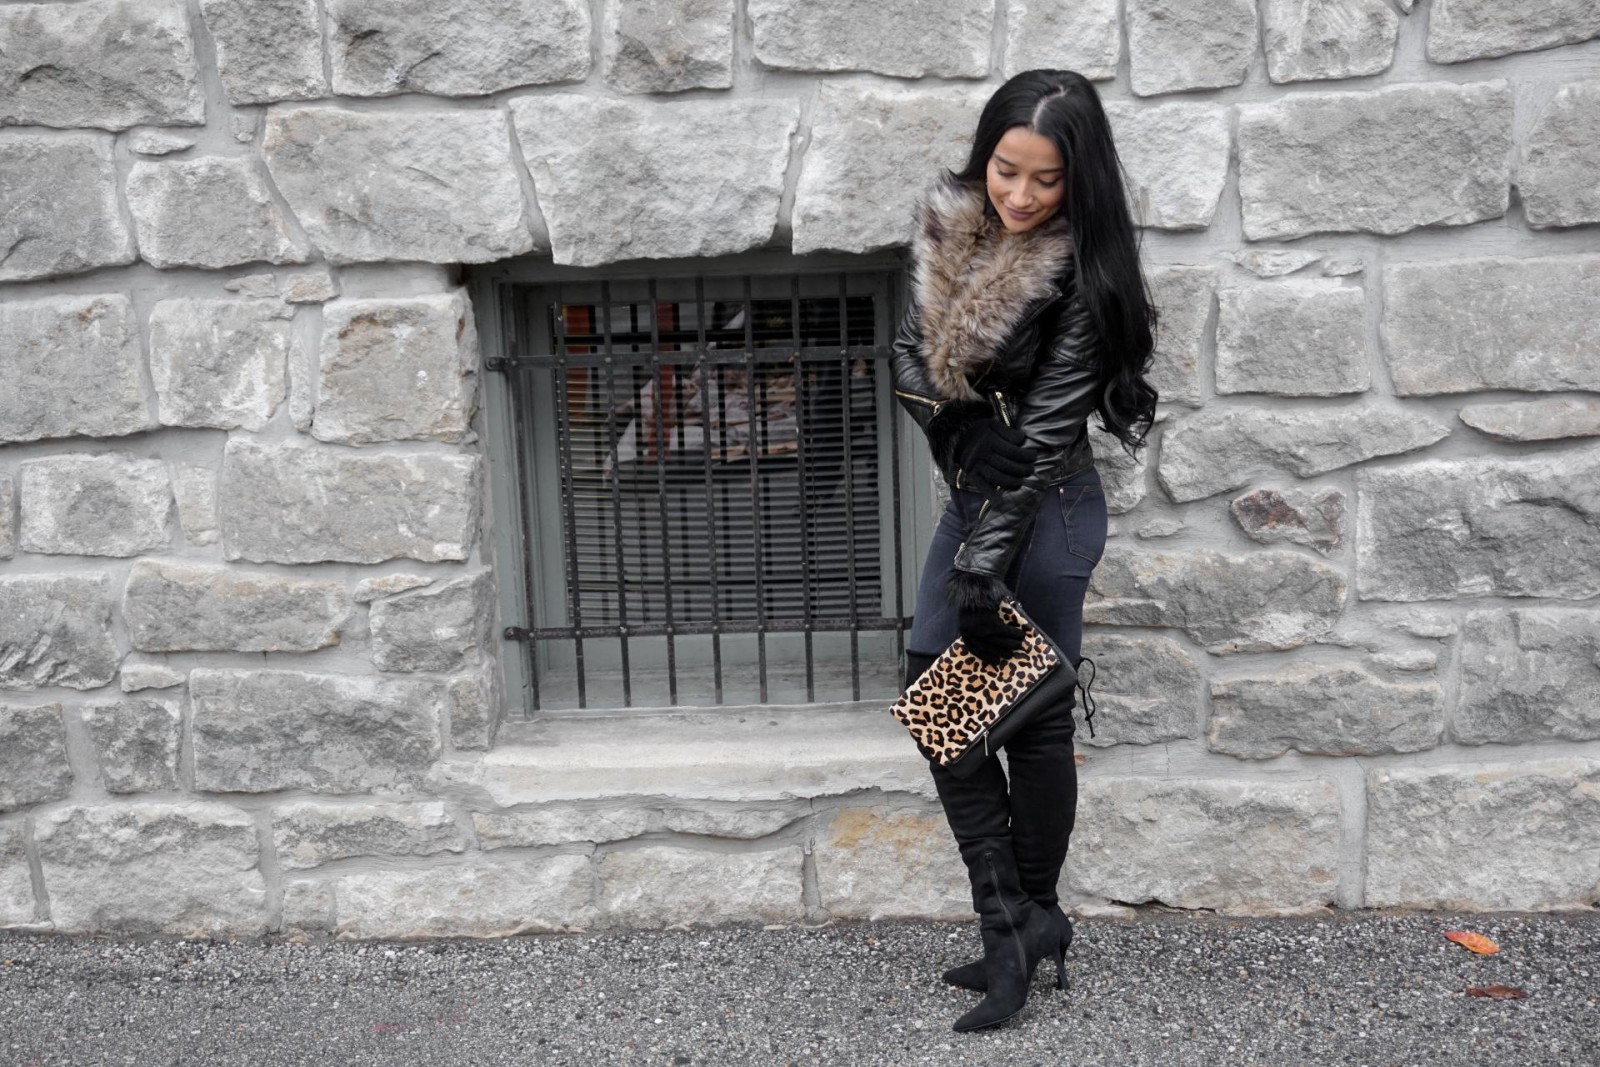 Motto Leather Jacket, Faux Fur, Aldo Thigh High Boots